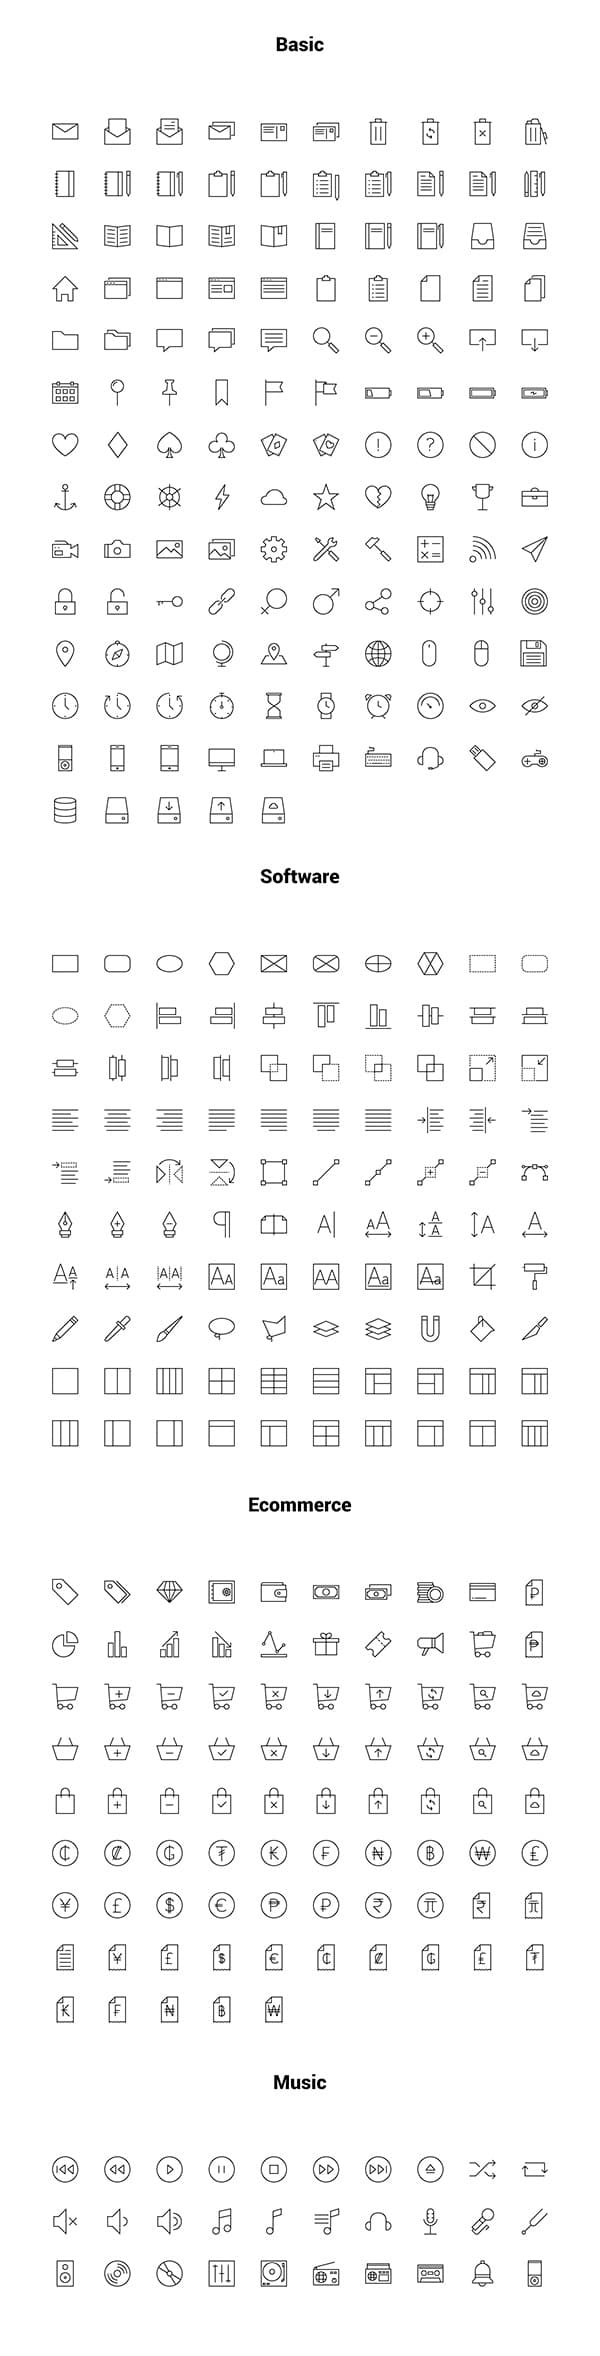 Linea Outline Iconset